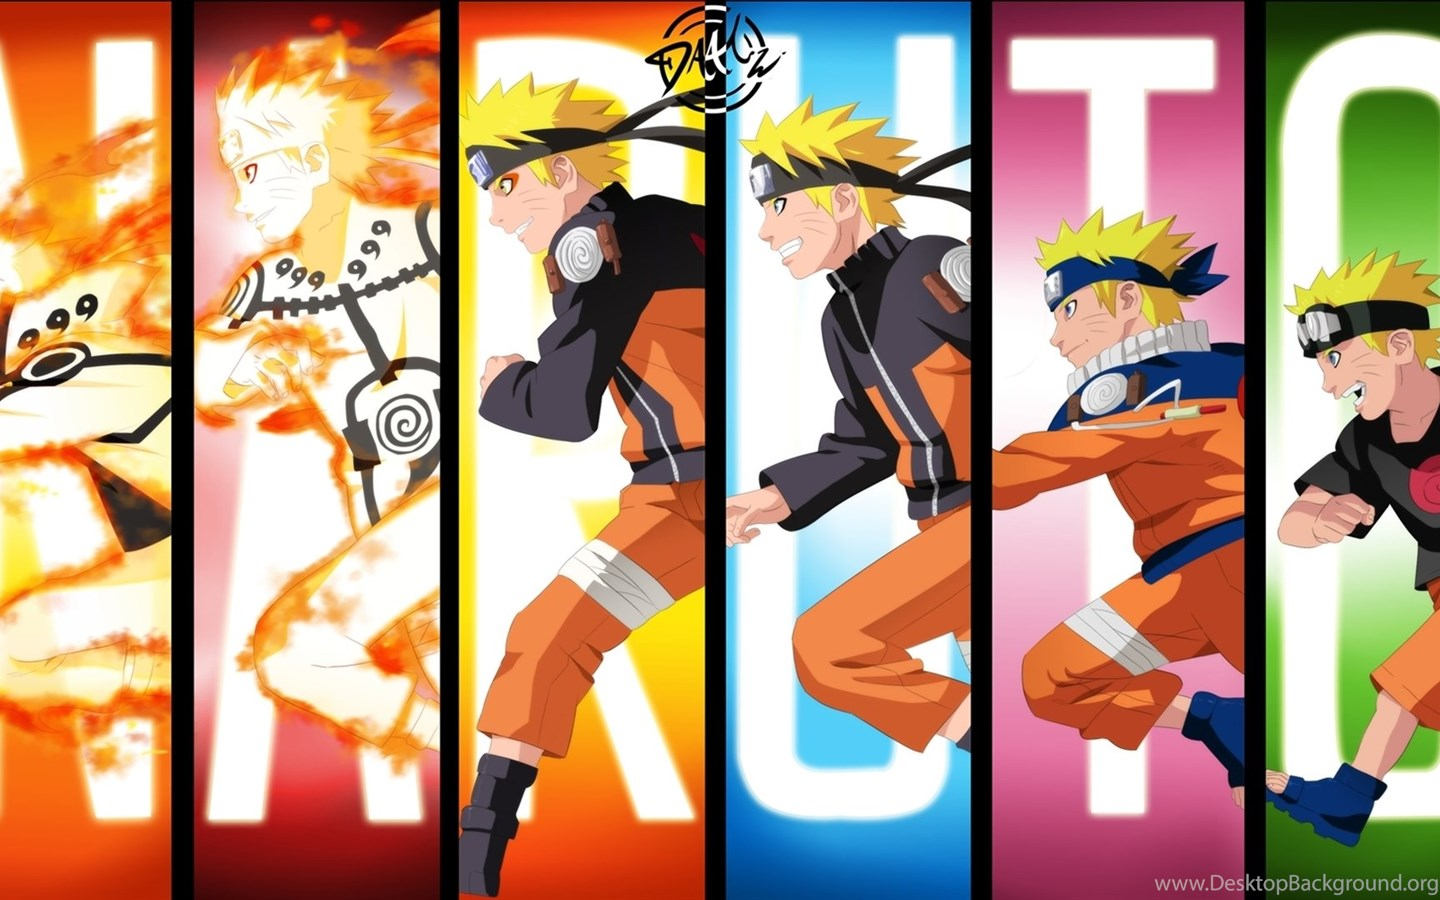 Hd Best Naruto Wallpapers Hd 1080p Full Size Hirewallpapers 3736 Desktop Background